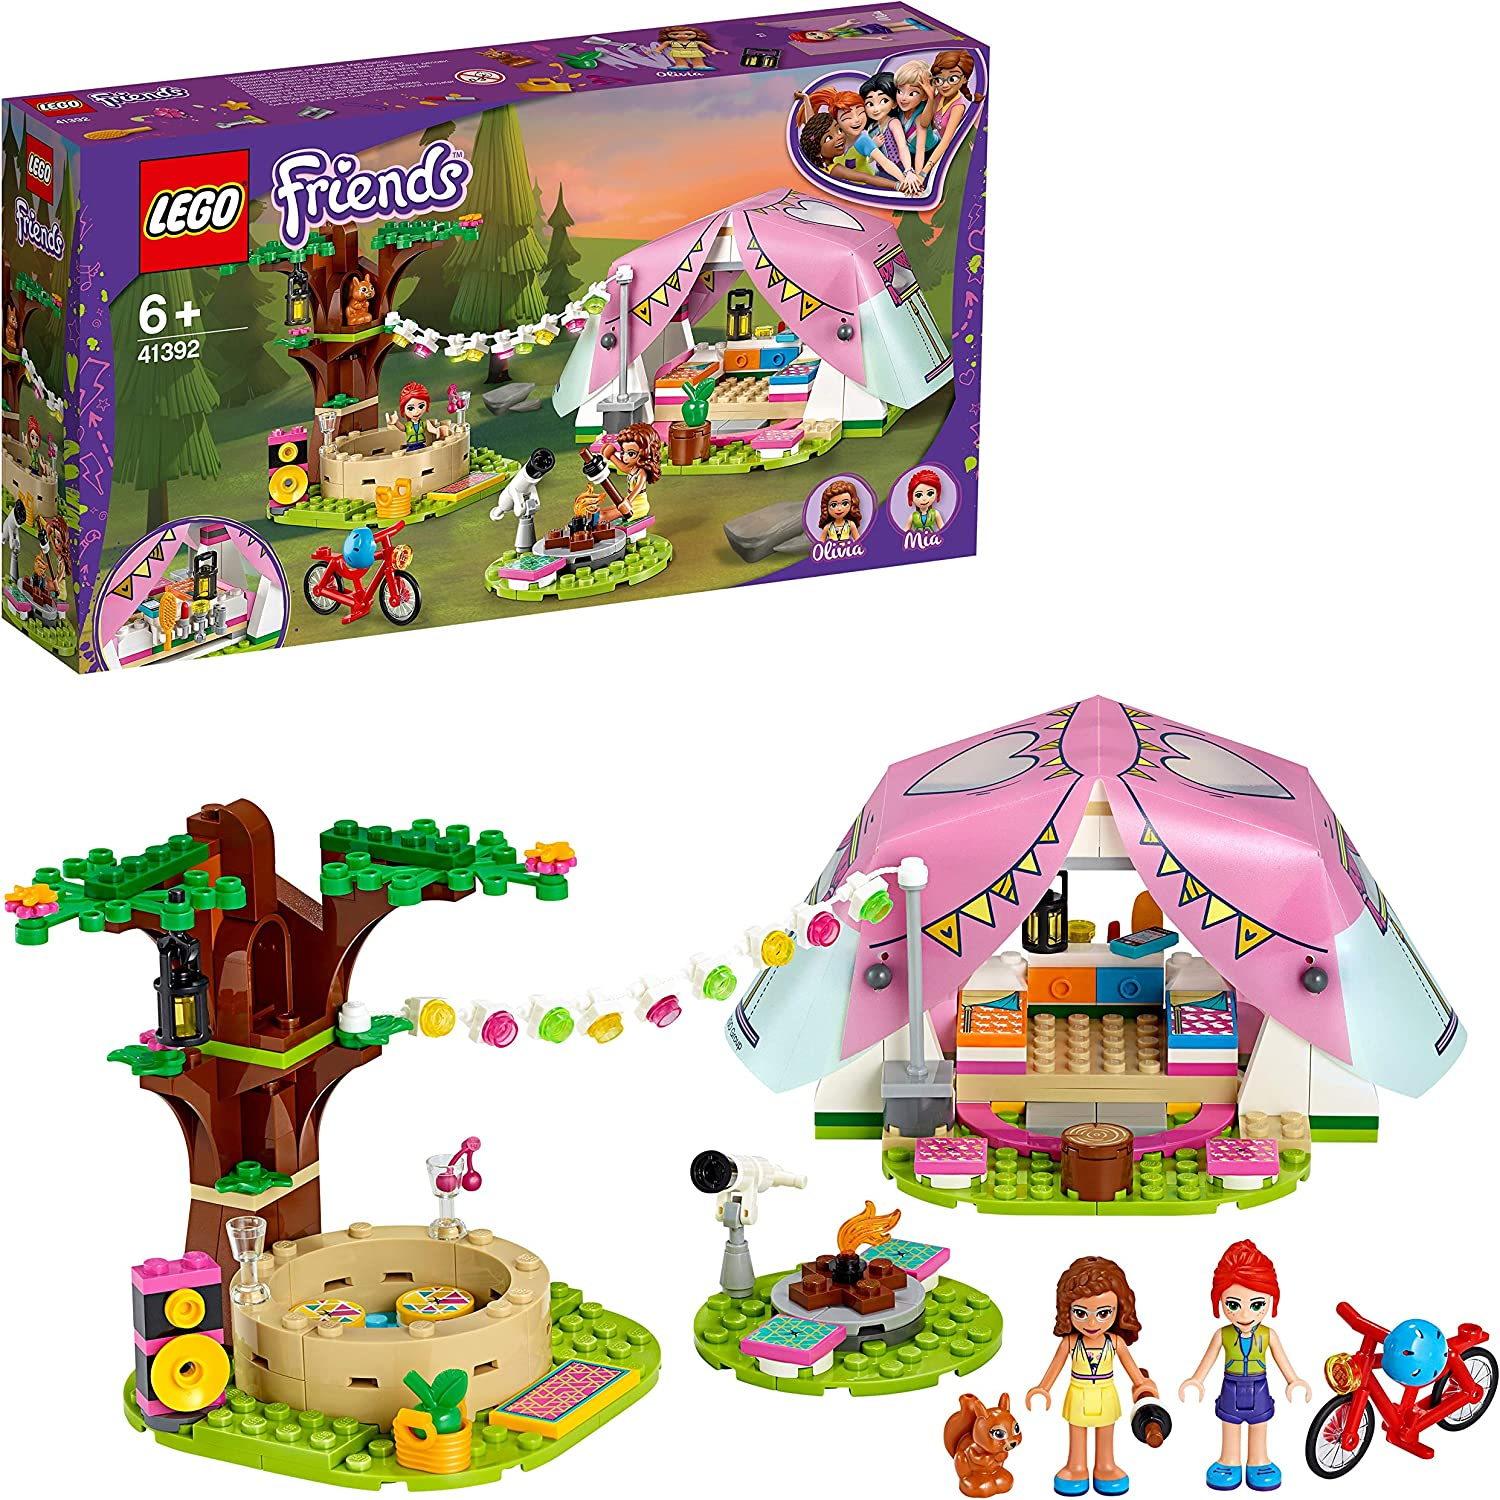 LEGO Friends Nature Glamping Outdoor Adventure Playset 20% OFF £19.99 @ Amazon